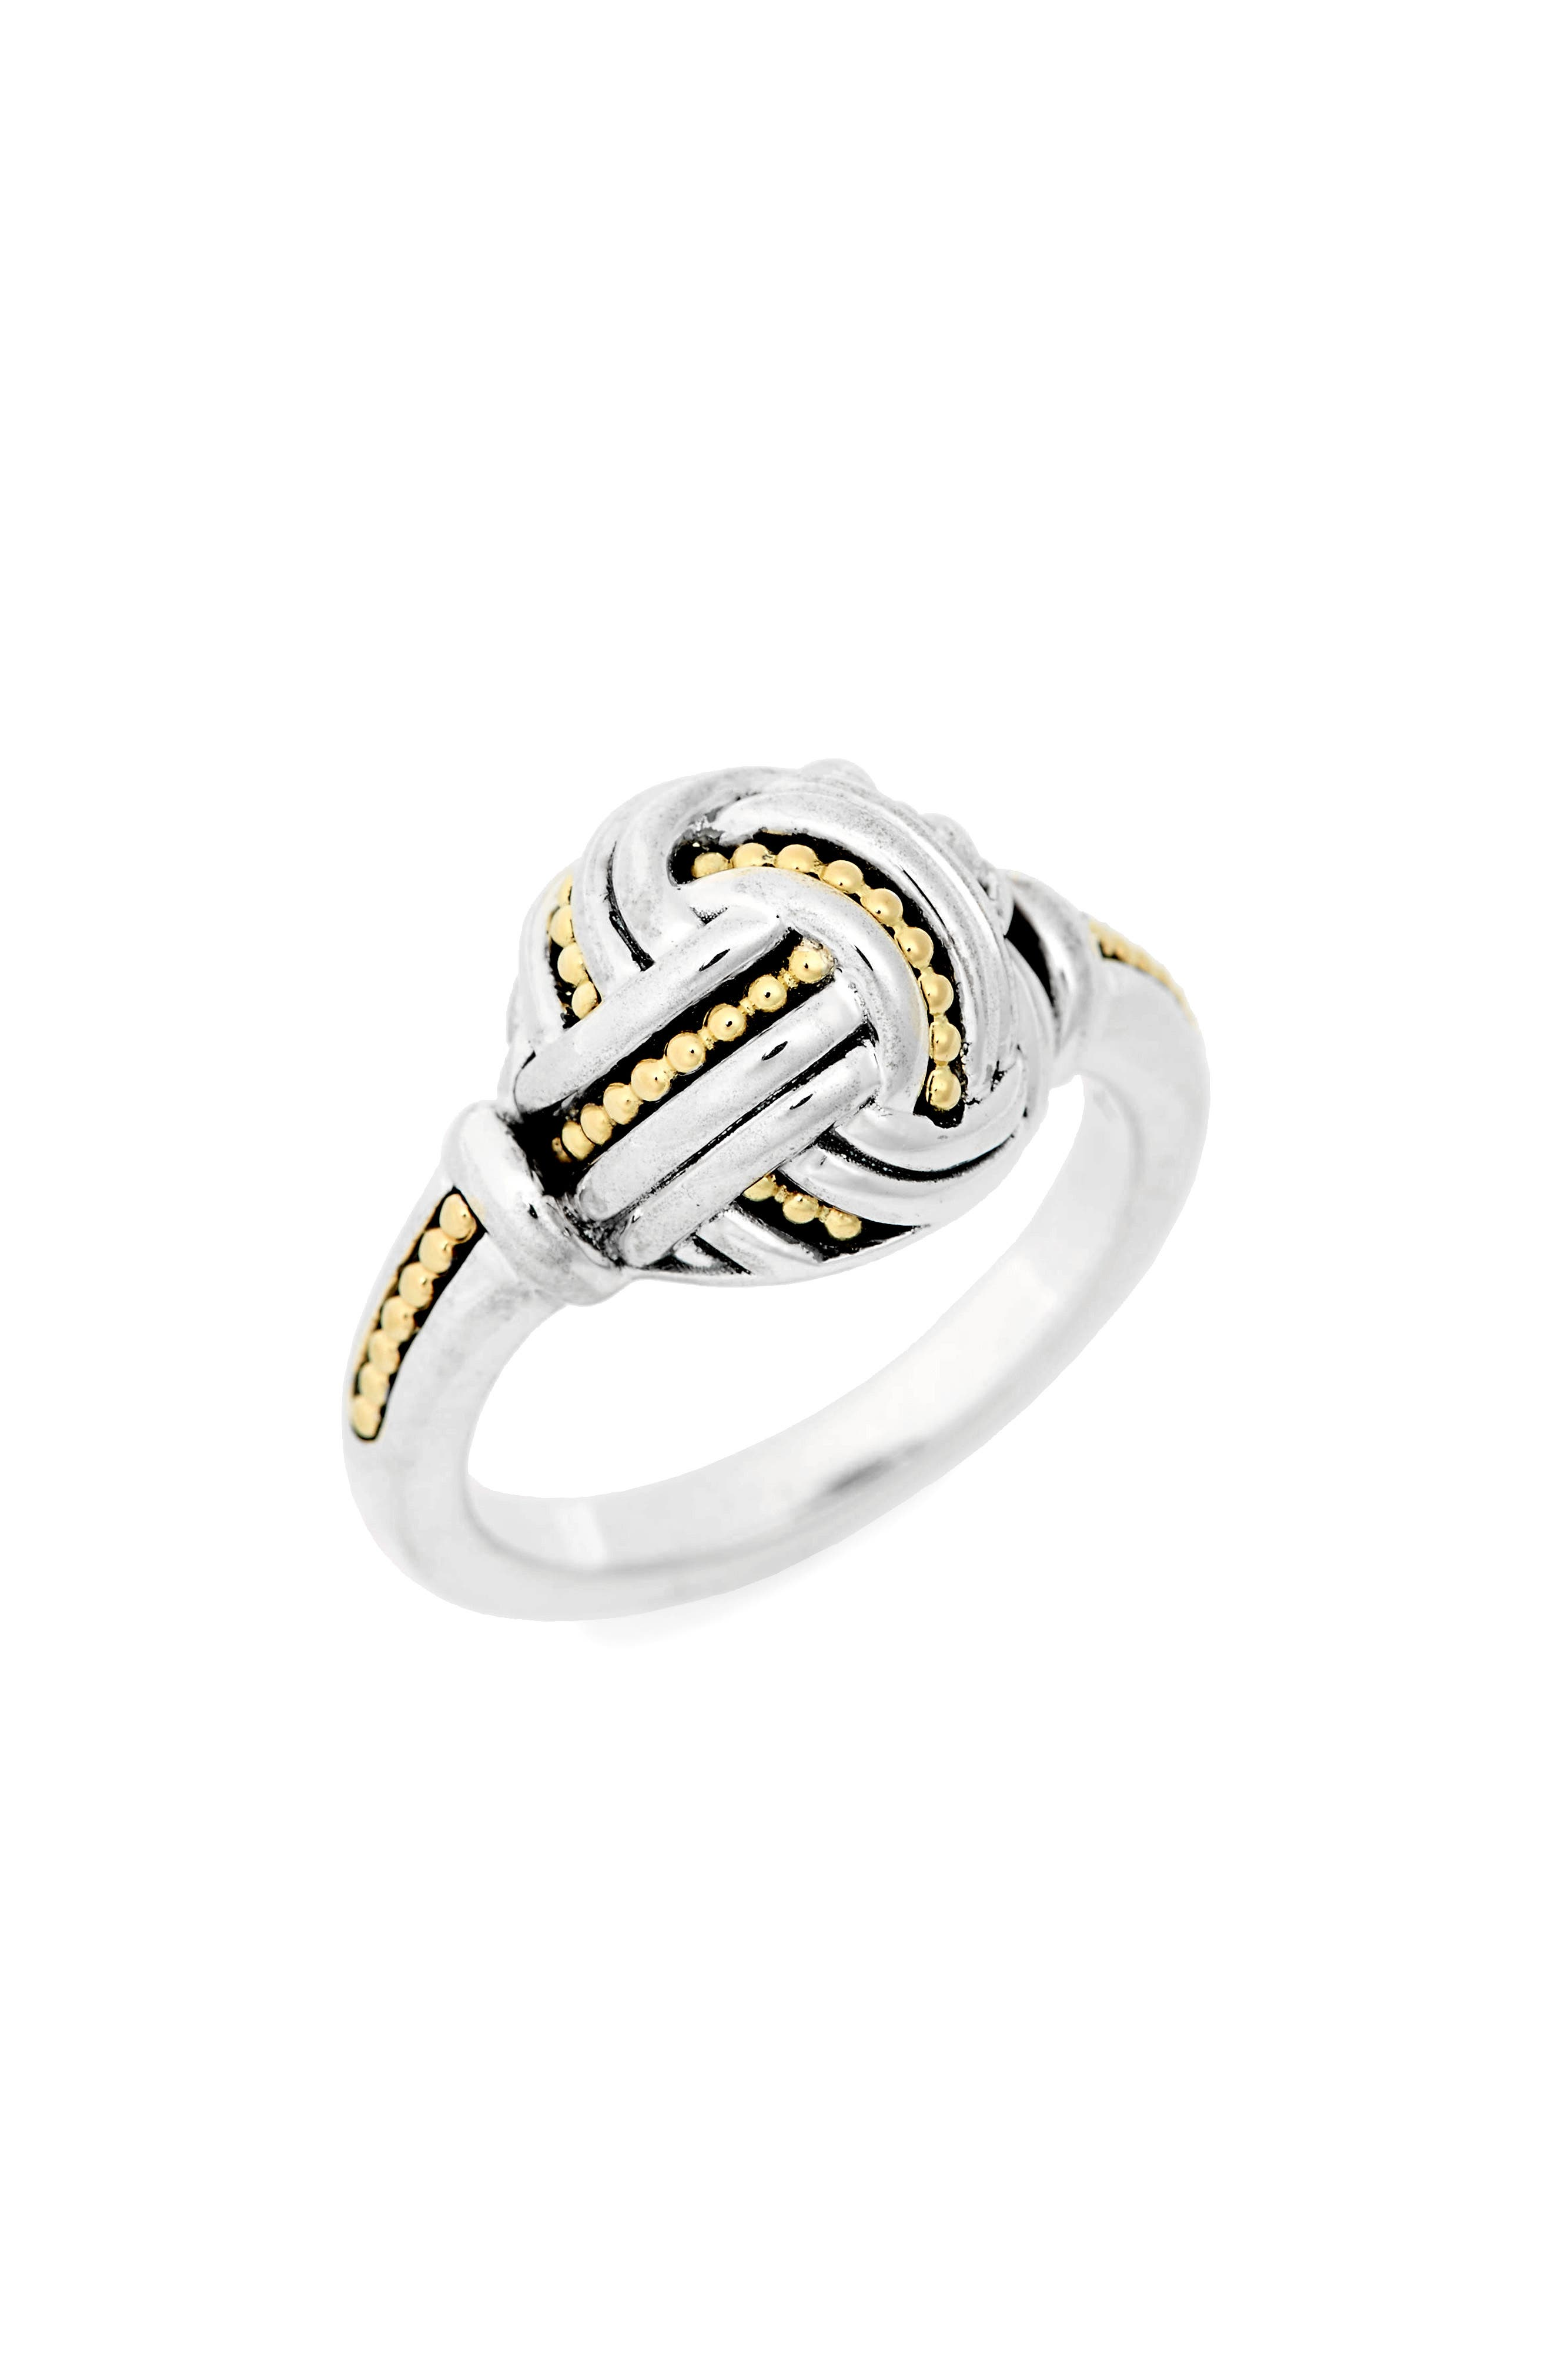 Alternate Image 1 Selected - LAGOS Small Round Ring